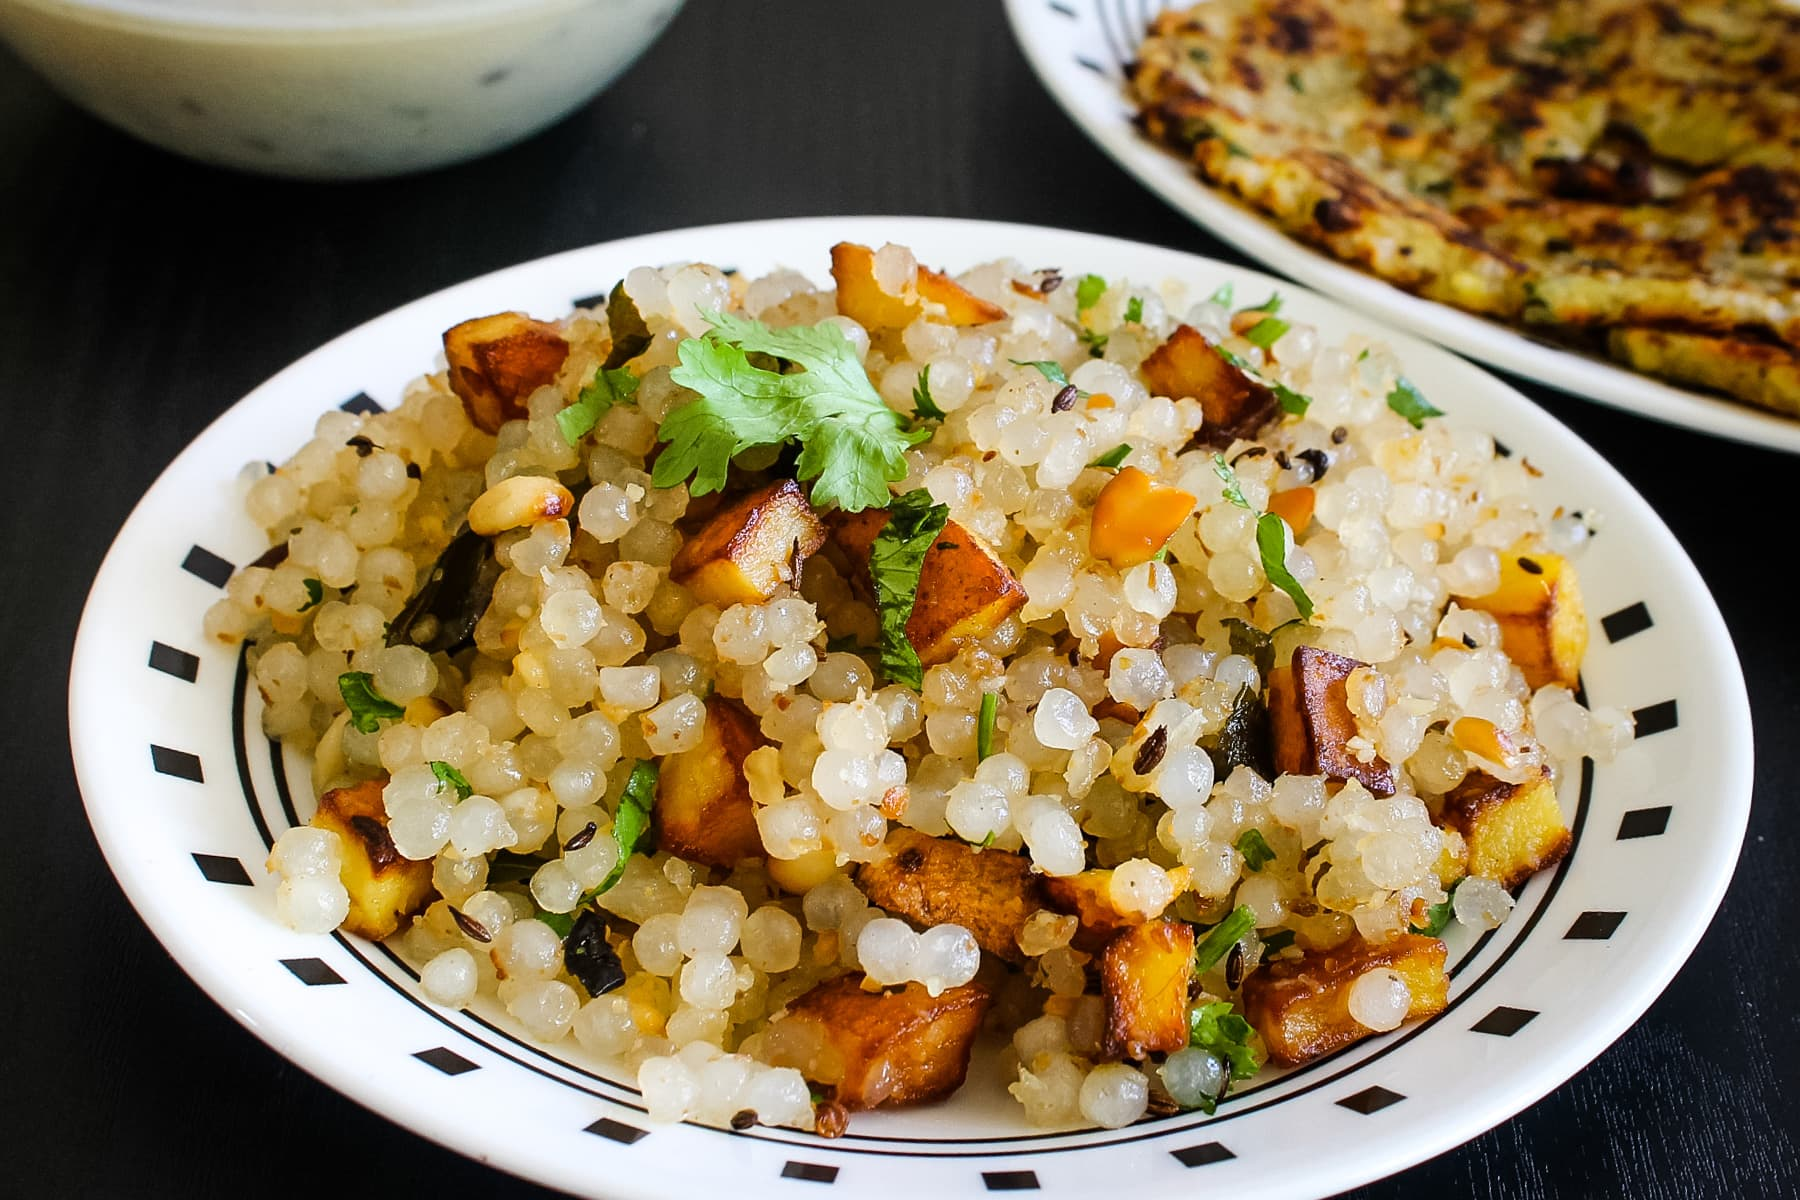 Sabudana khichdi in a plate with a garnish of cilantro